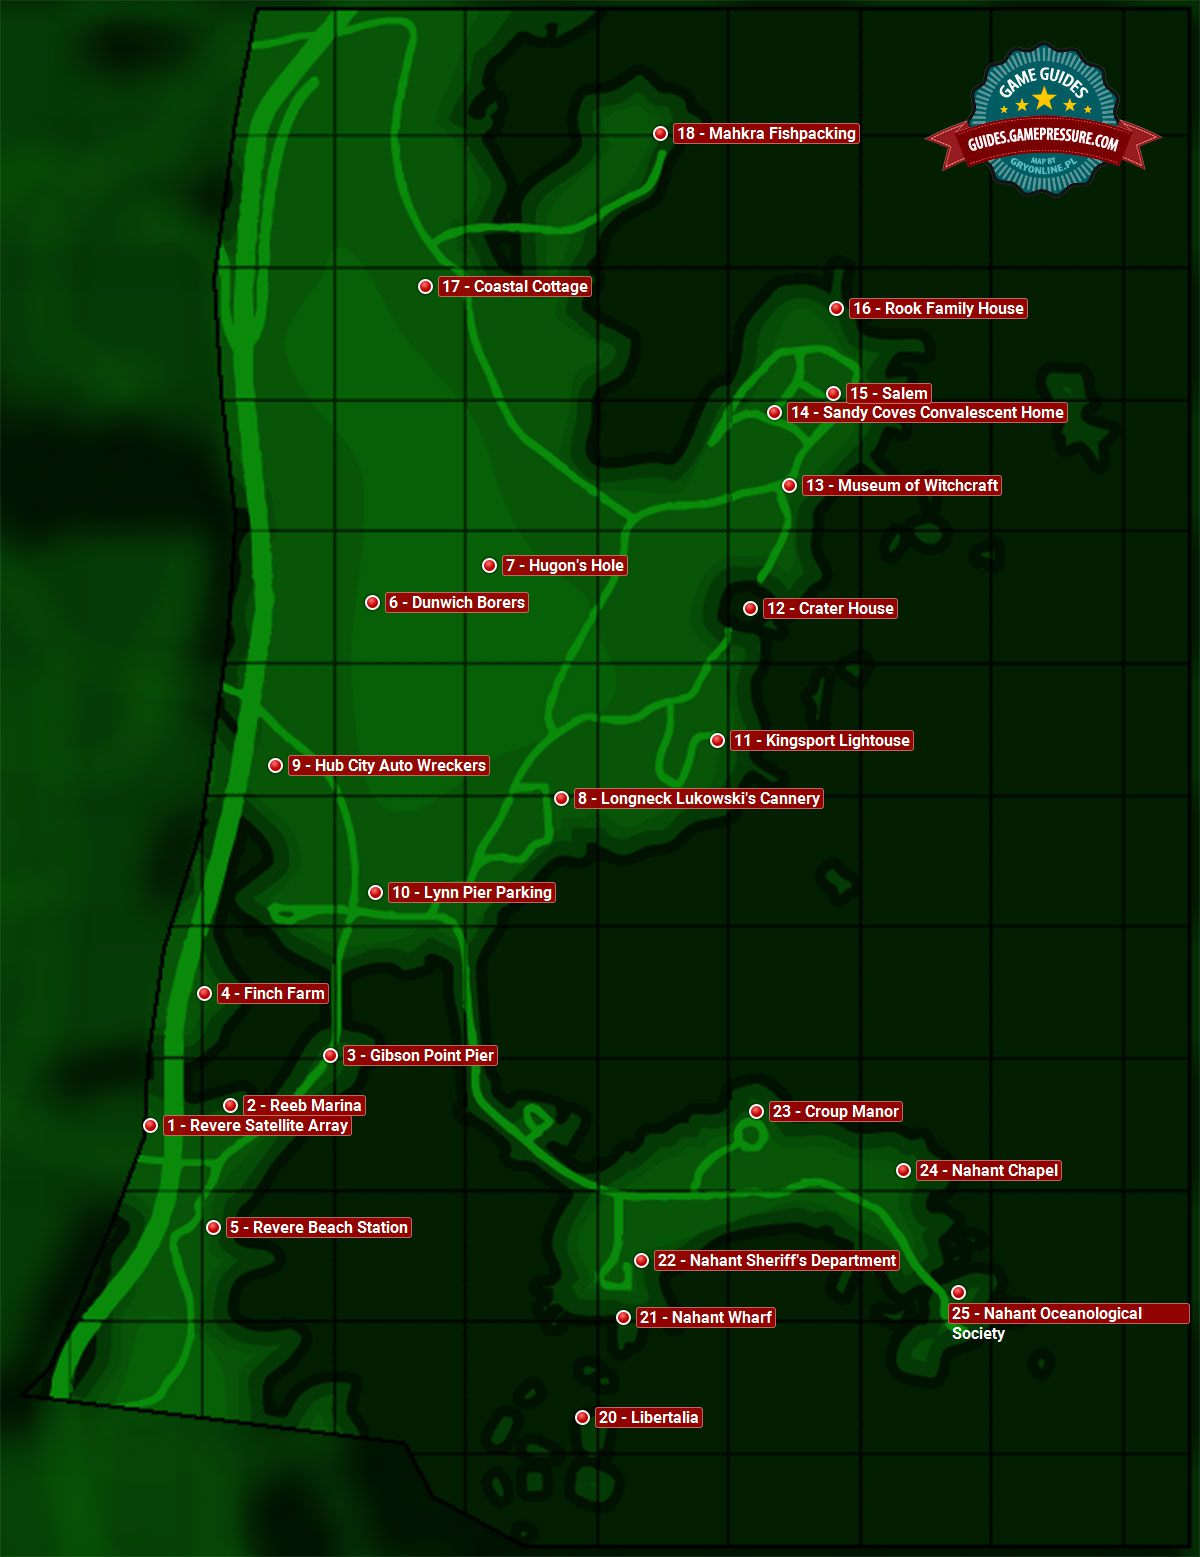 Fallout 4 Enemy Level Map : fallout, enemy, level, Salem, Sector, Fallout, Guide, Walkthrough, Gamepressure.com